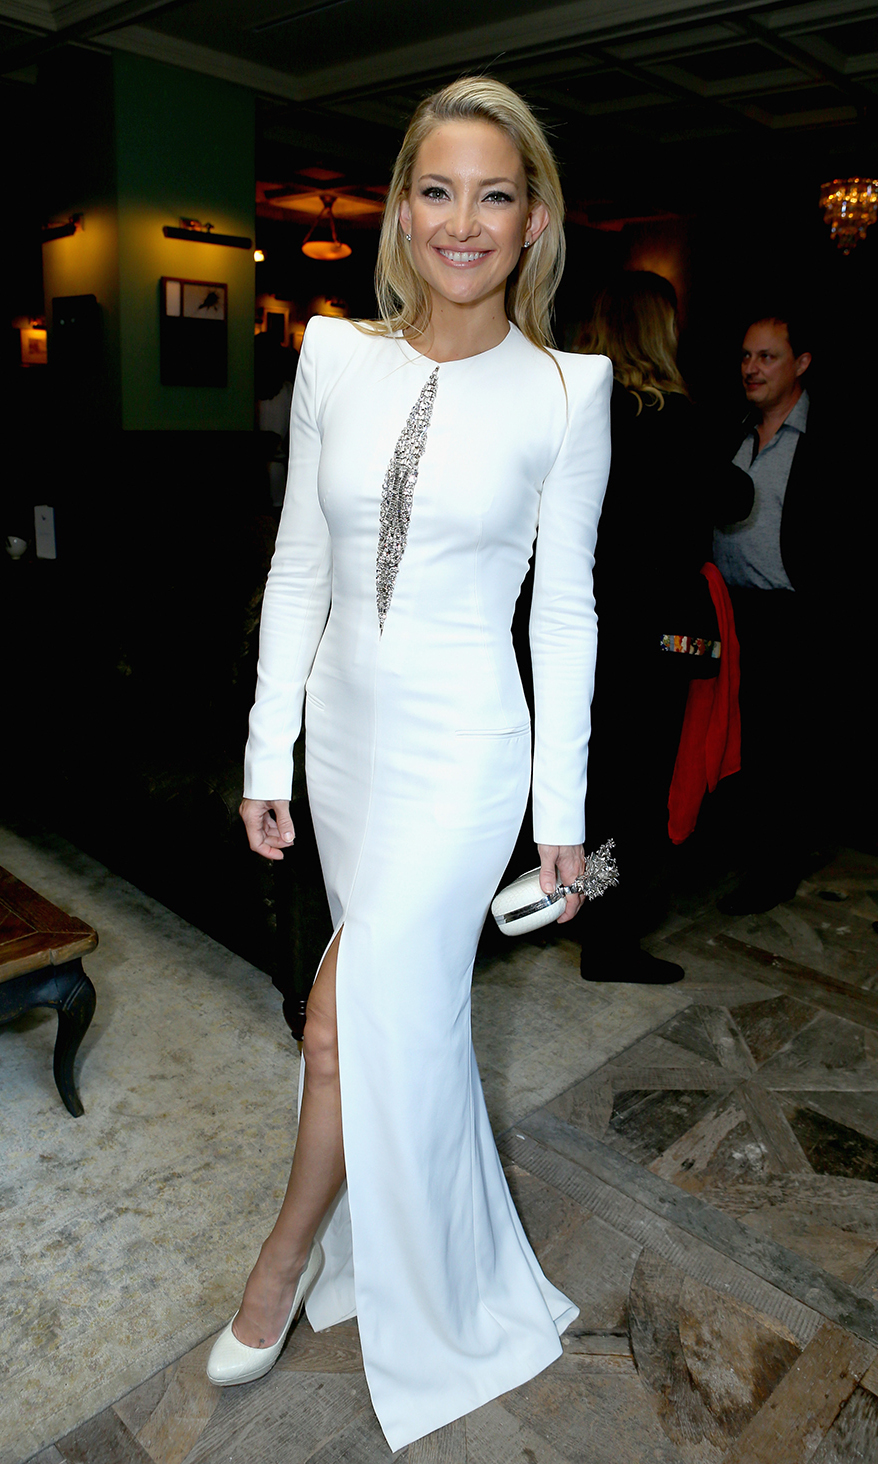 Actress Kate Hudson attends 'The Reluctant Fundamentalist' Soho House Grey Goose Vodka pre-gala screening party.